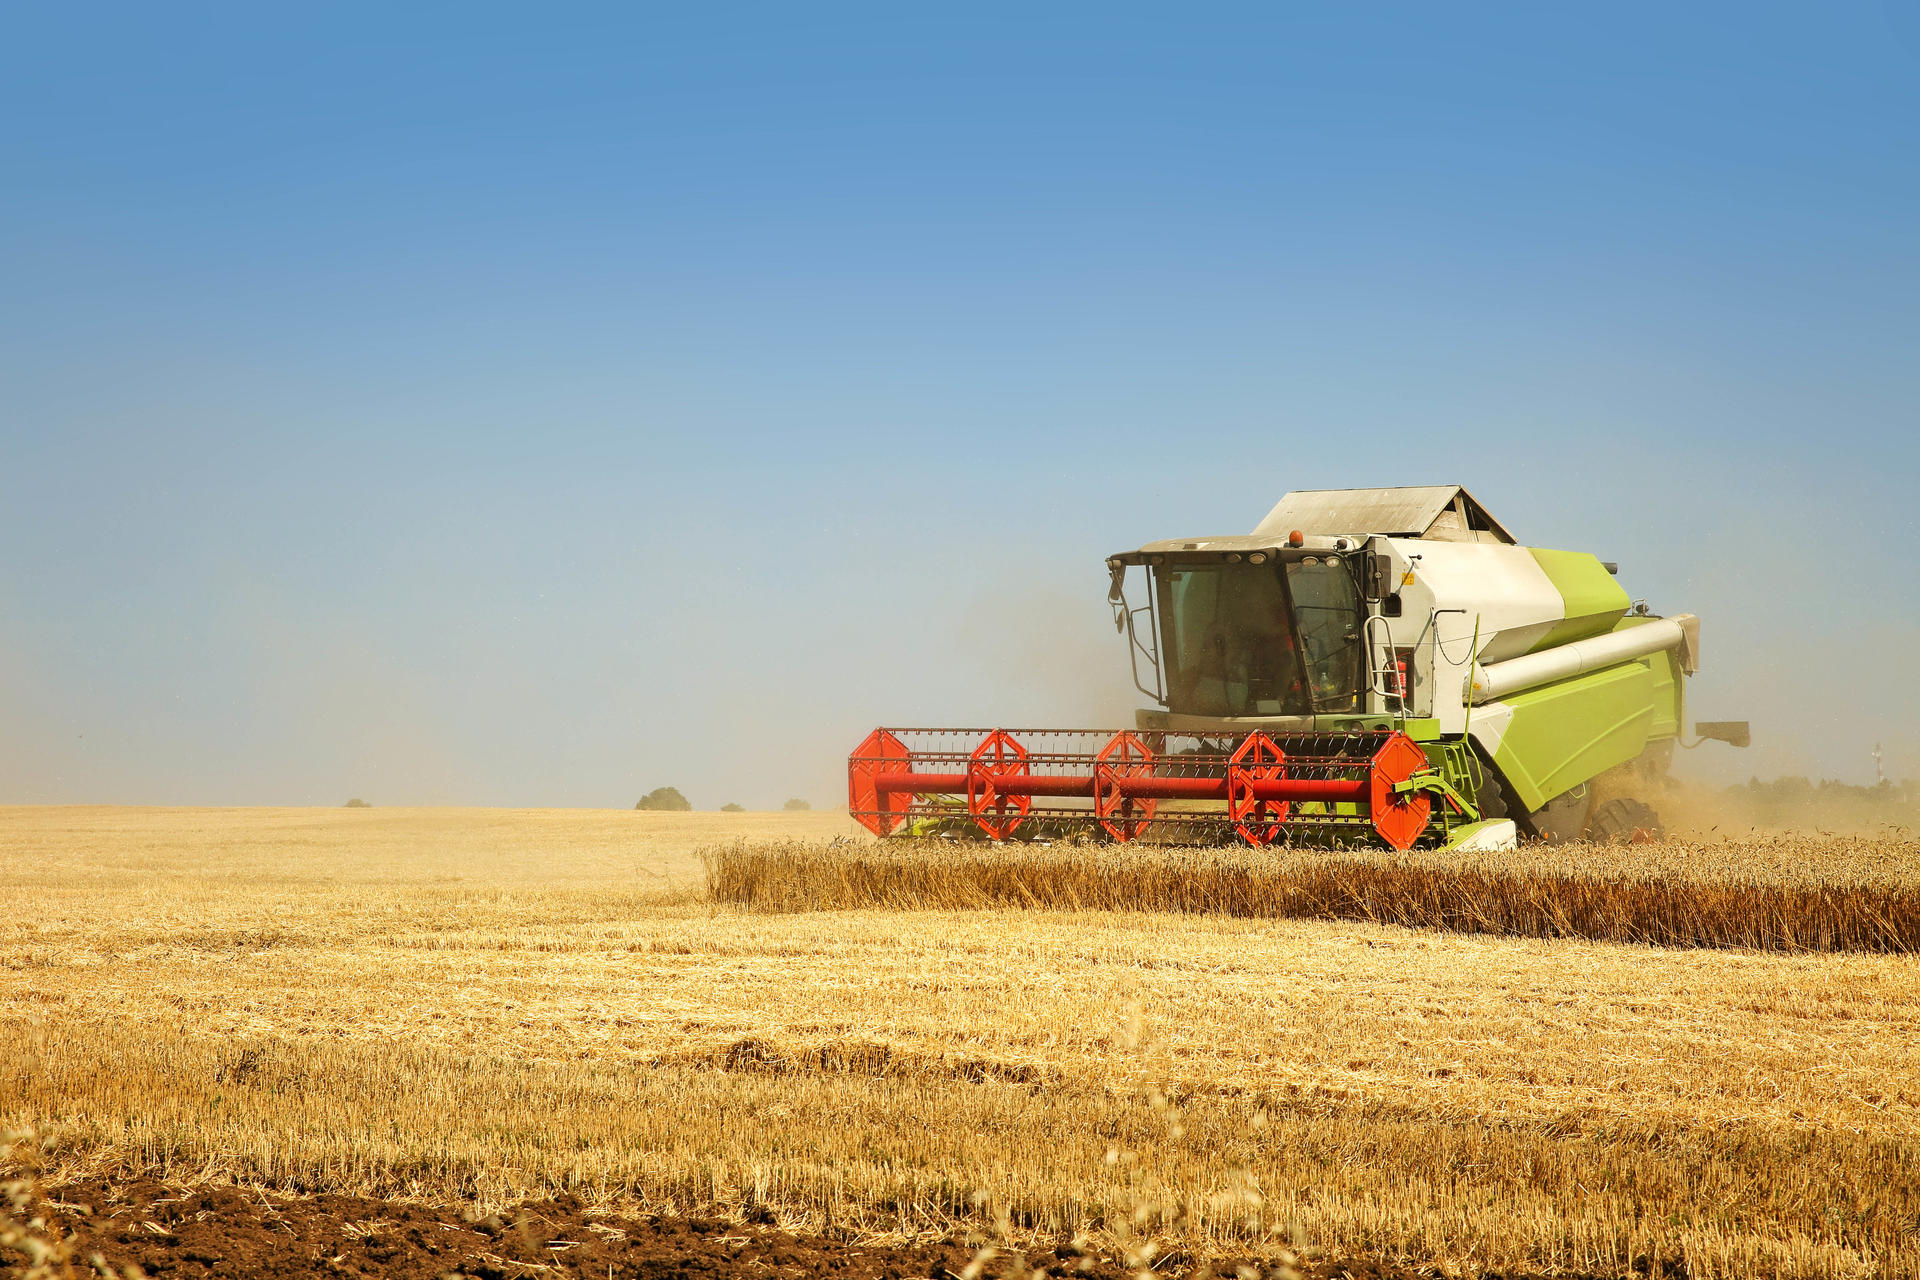 Claas combine harvester in the wheat field